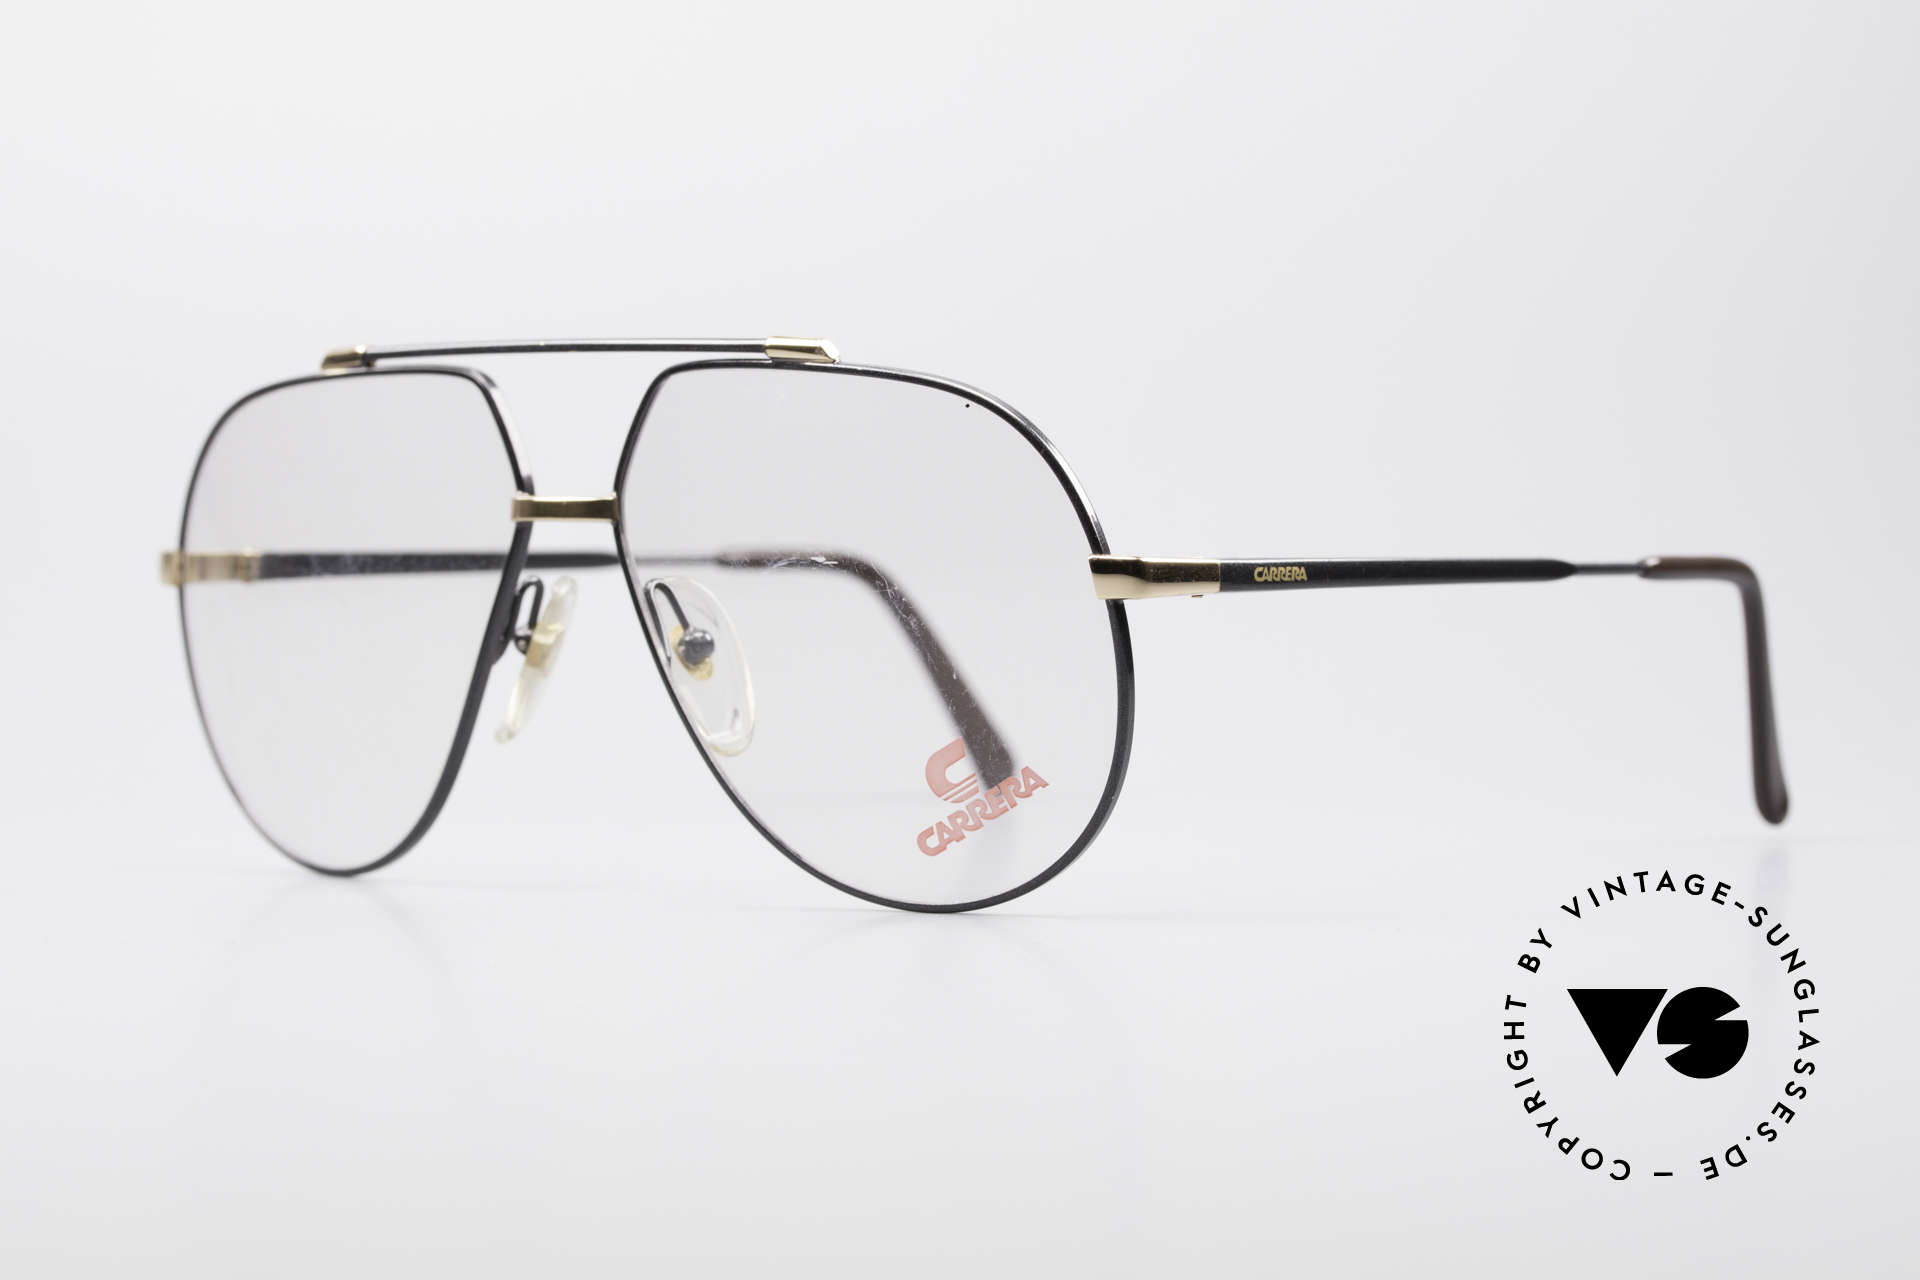 Carrera 5369 Large Vintage Eyeglasses, premium craftsmanship and very pleasantly to wear, Made for Men